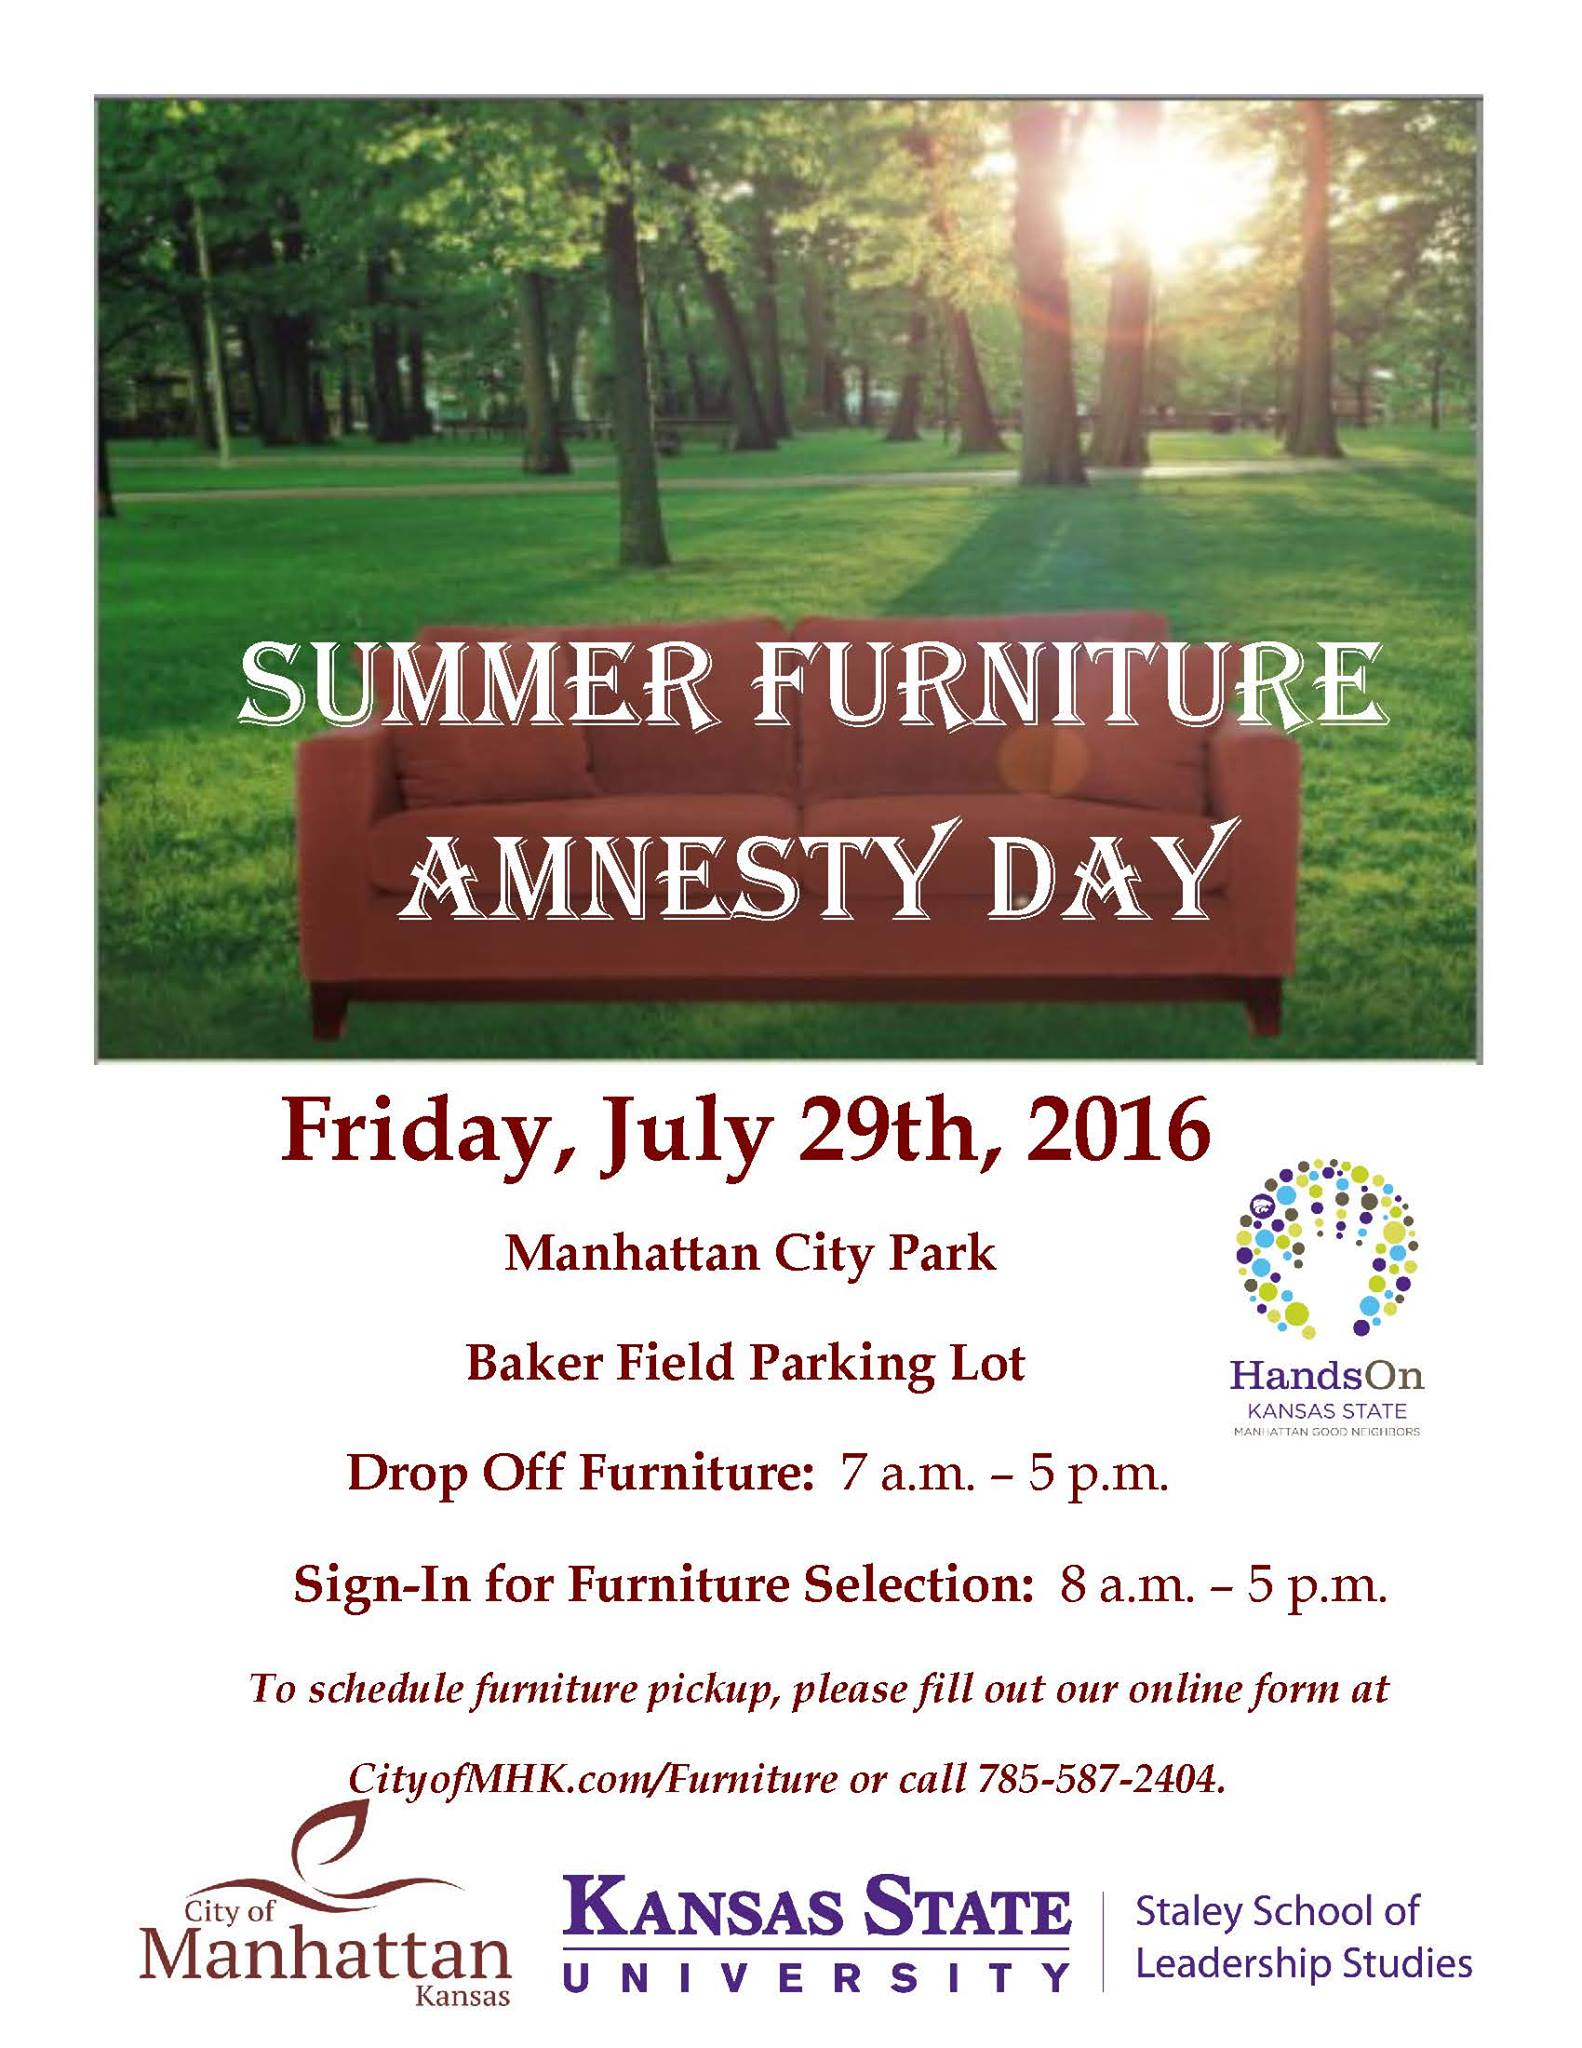 Furniture Amnesty Day 2016